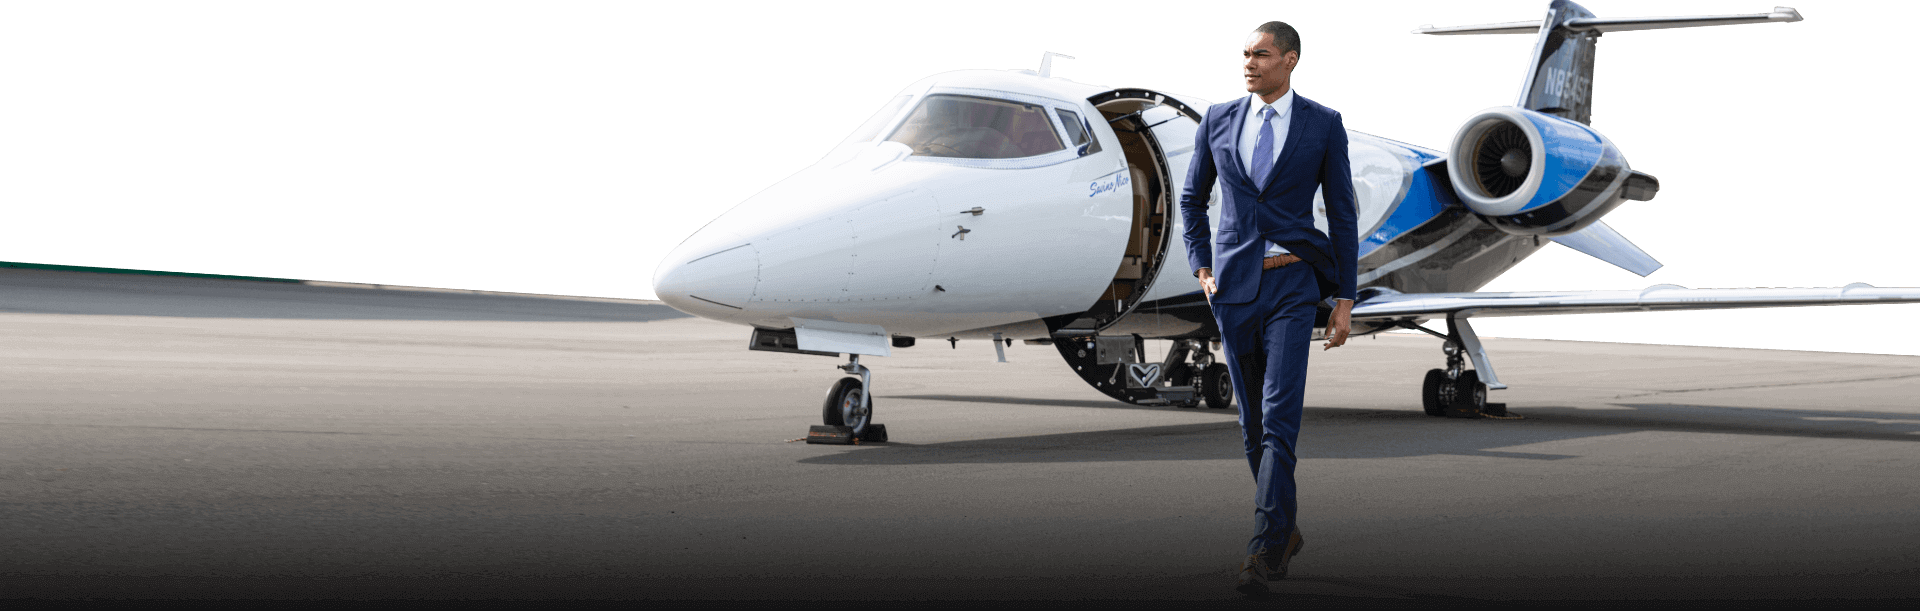 Private Jet Charter Services - Aviation Charters